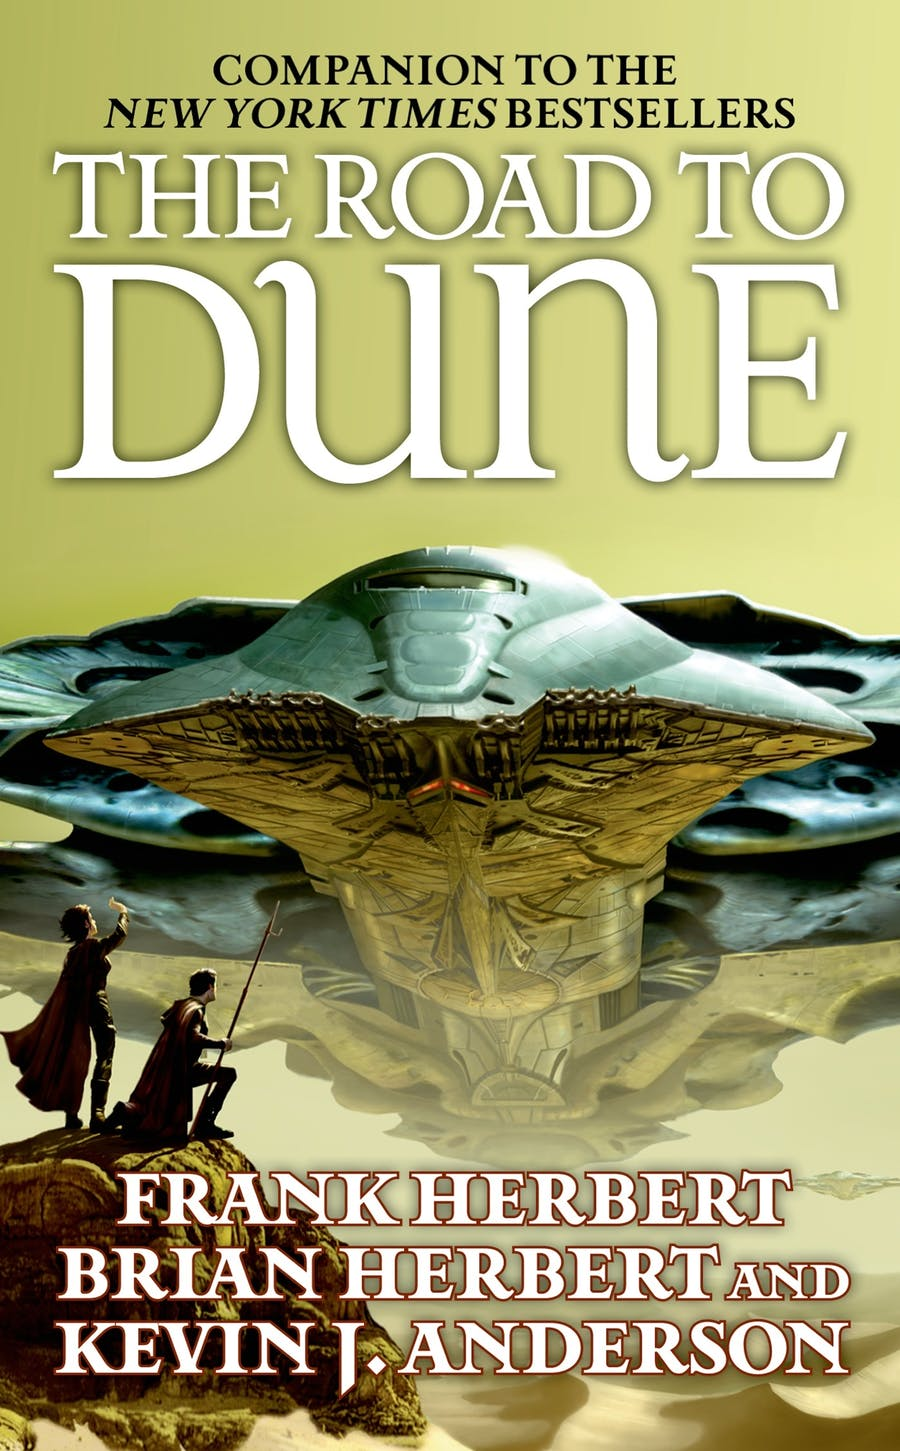 The Road to Dune by Frank Herbert, Brian Herbert, and Kevin J. Anderson